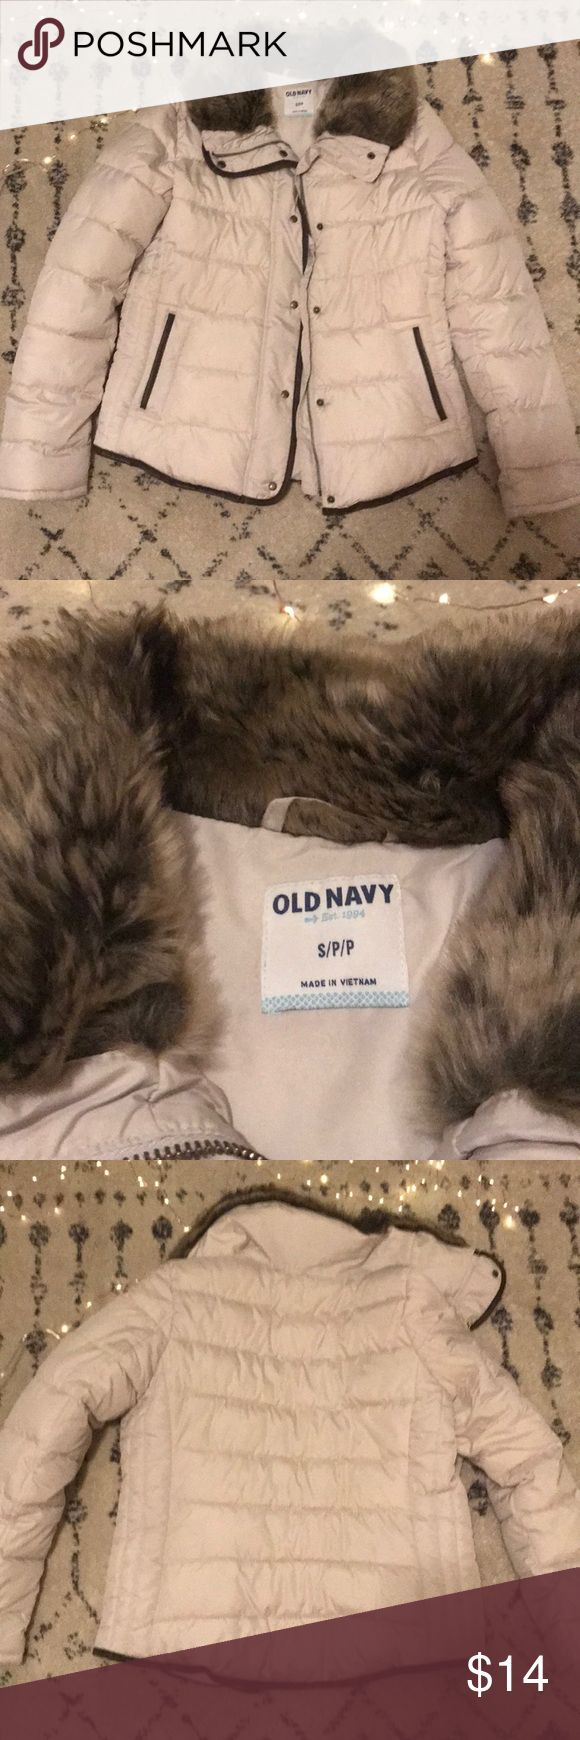 Warm Puffer Jacket So warm and only worn a couple of times! Fabulous condition! Brand Old Navy Size small Color is more of an off white/very light cream Fur hood does not detach Old Navy Jackets & Coats Puffers